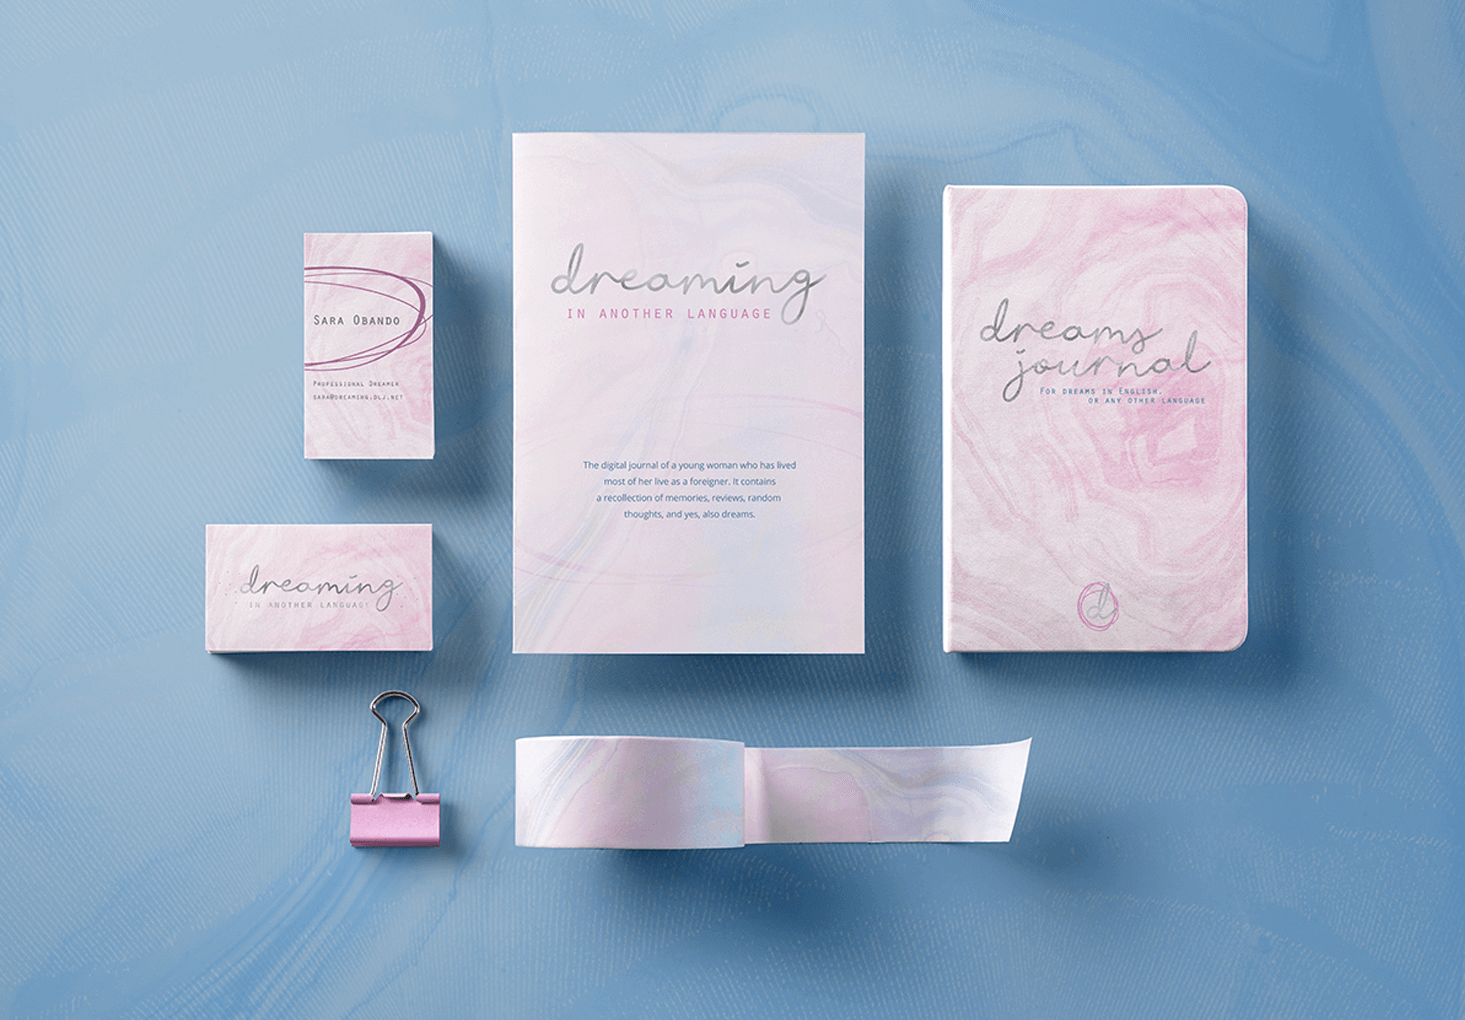 Flat lay photo showcasing branded stationery items for Dreaming in Another Language